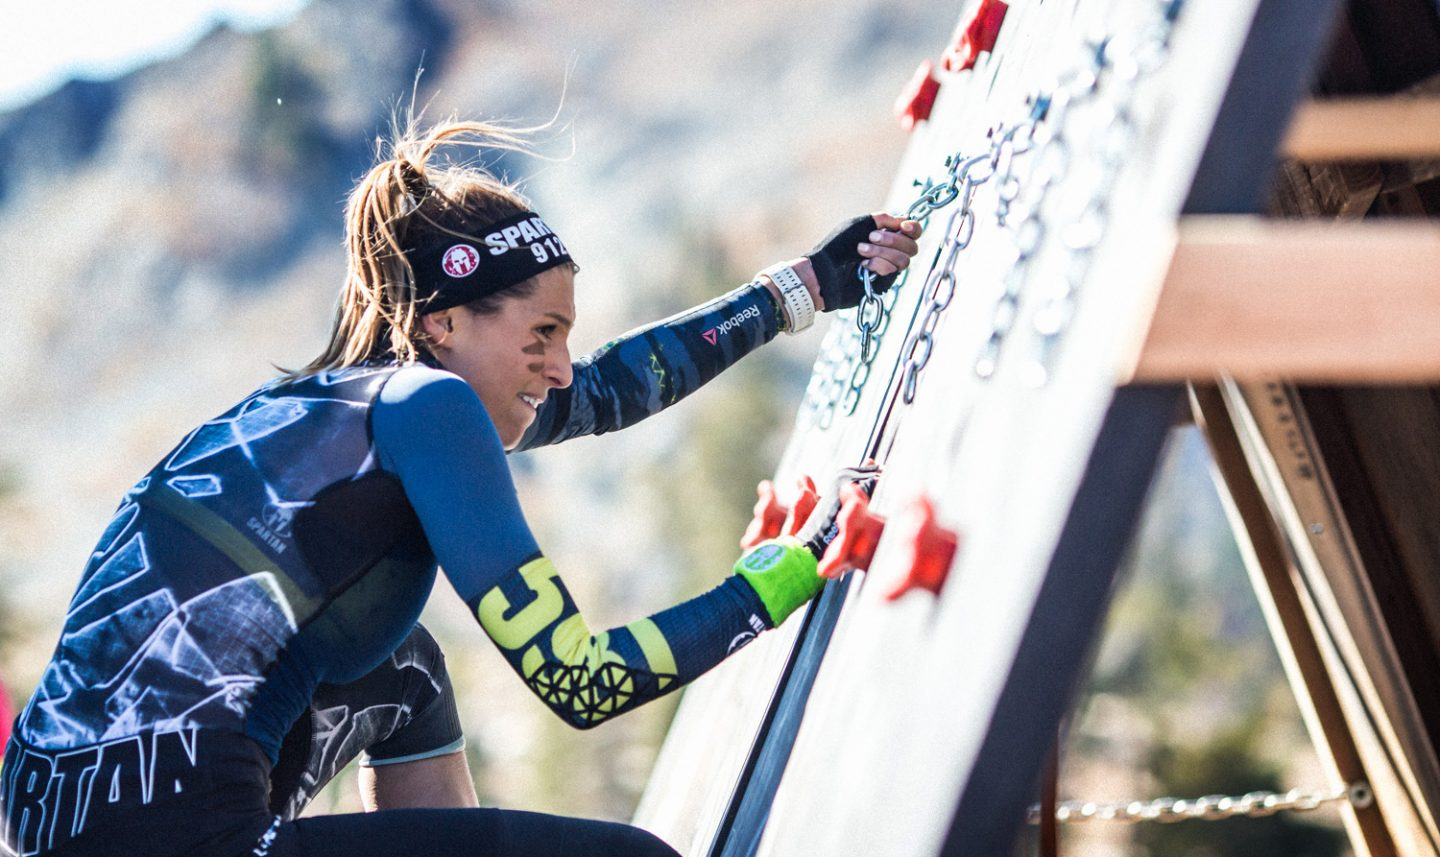 woman climbing wall spartan race laury thilleman